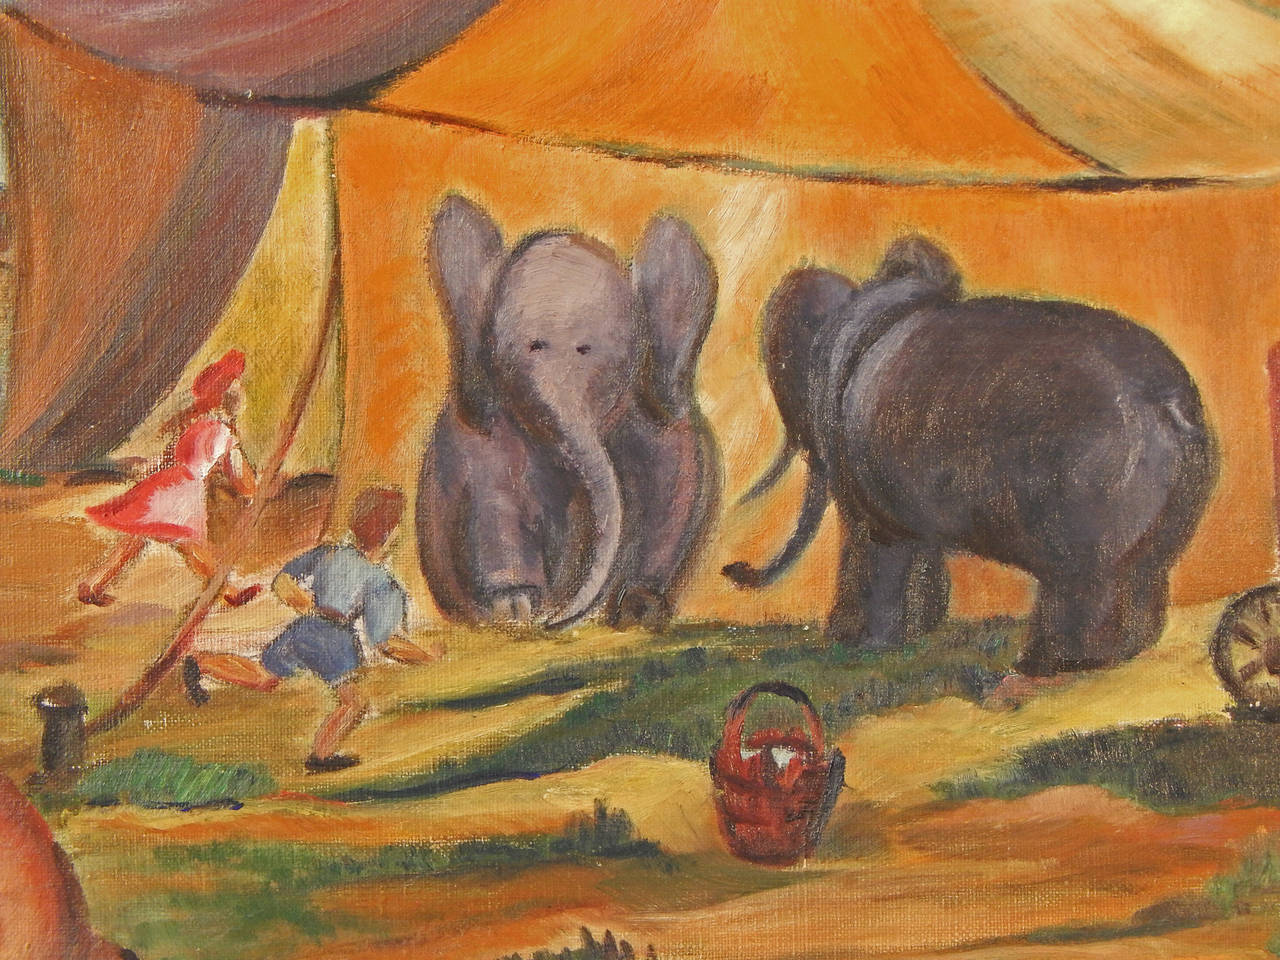 Bringing exuberance and vivid color to its depiction of small town life, this painting depicts the circus big top on the edge of town, with a wagon to one side, a pair of elephants waiting for their moment and two children rushing toward the action.